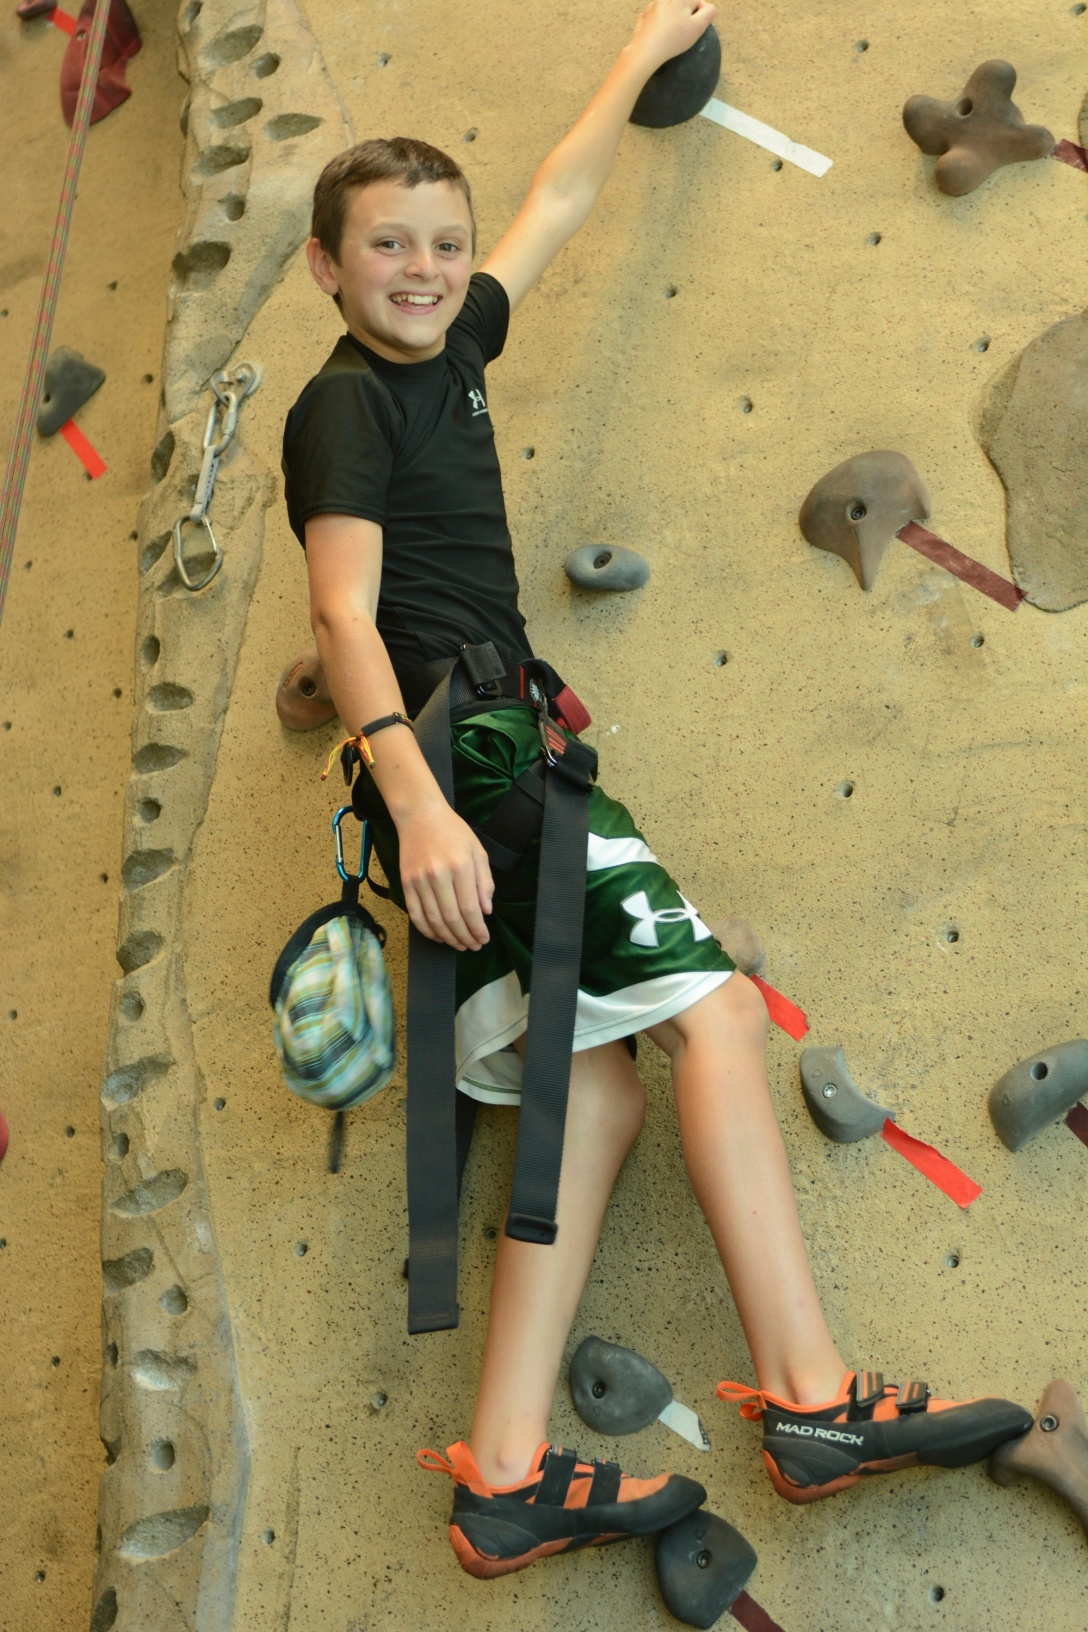 Jack won a climbing competition last weekend at Life Time.